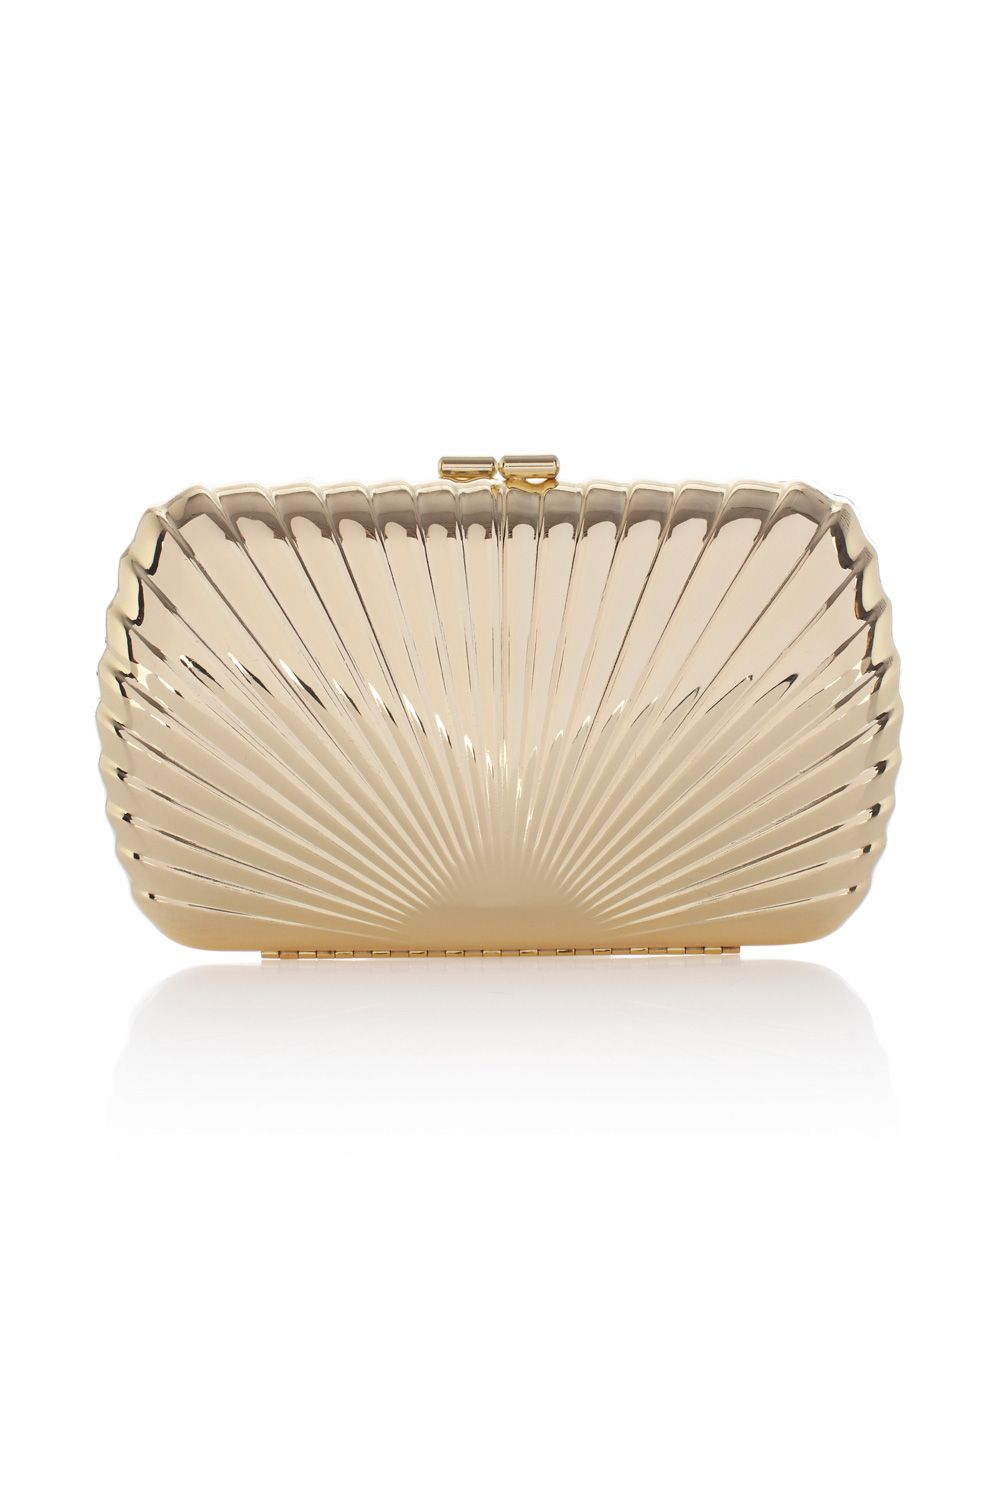 Gold sunray clutch